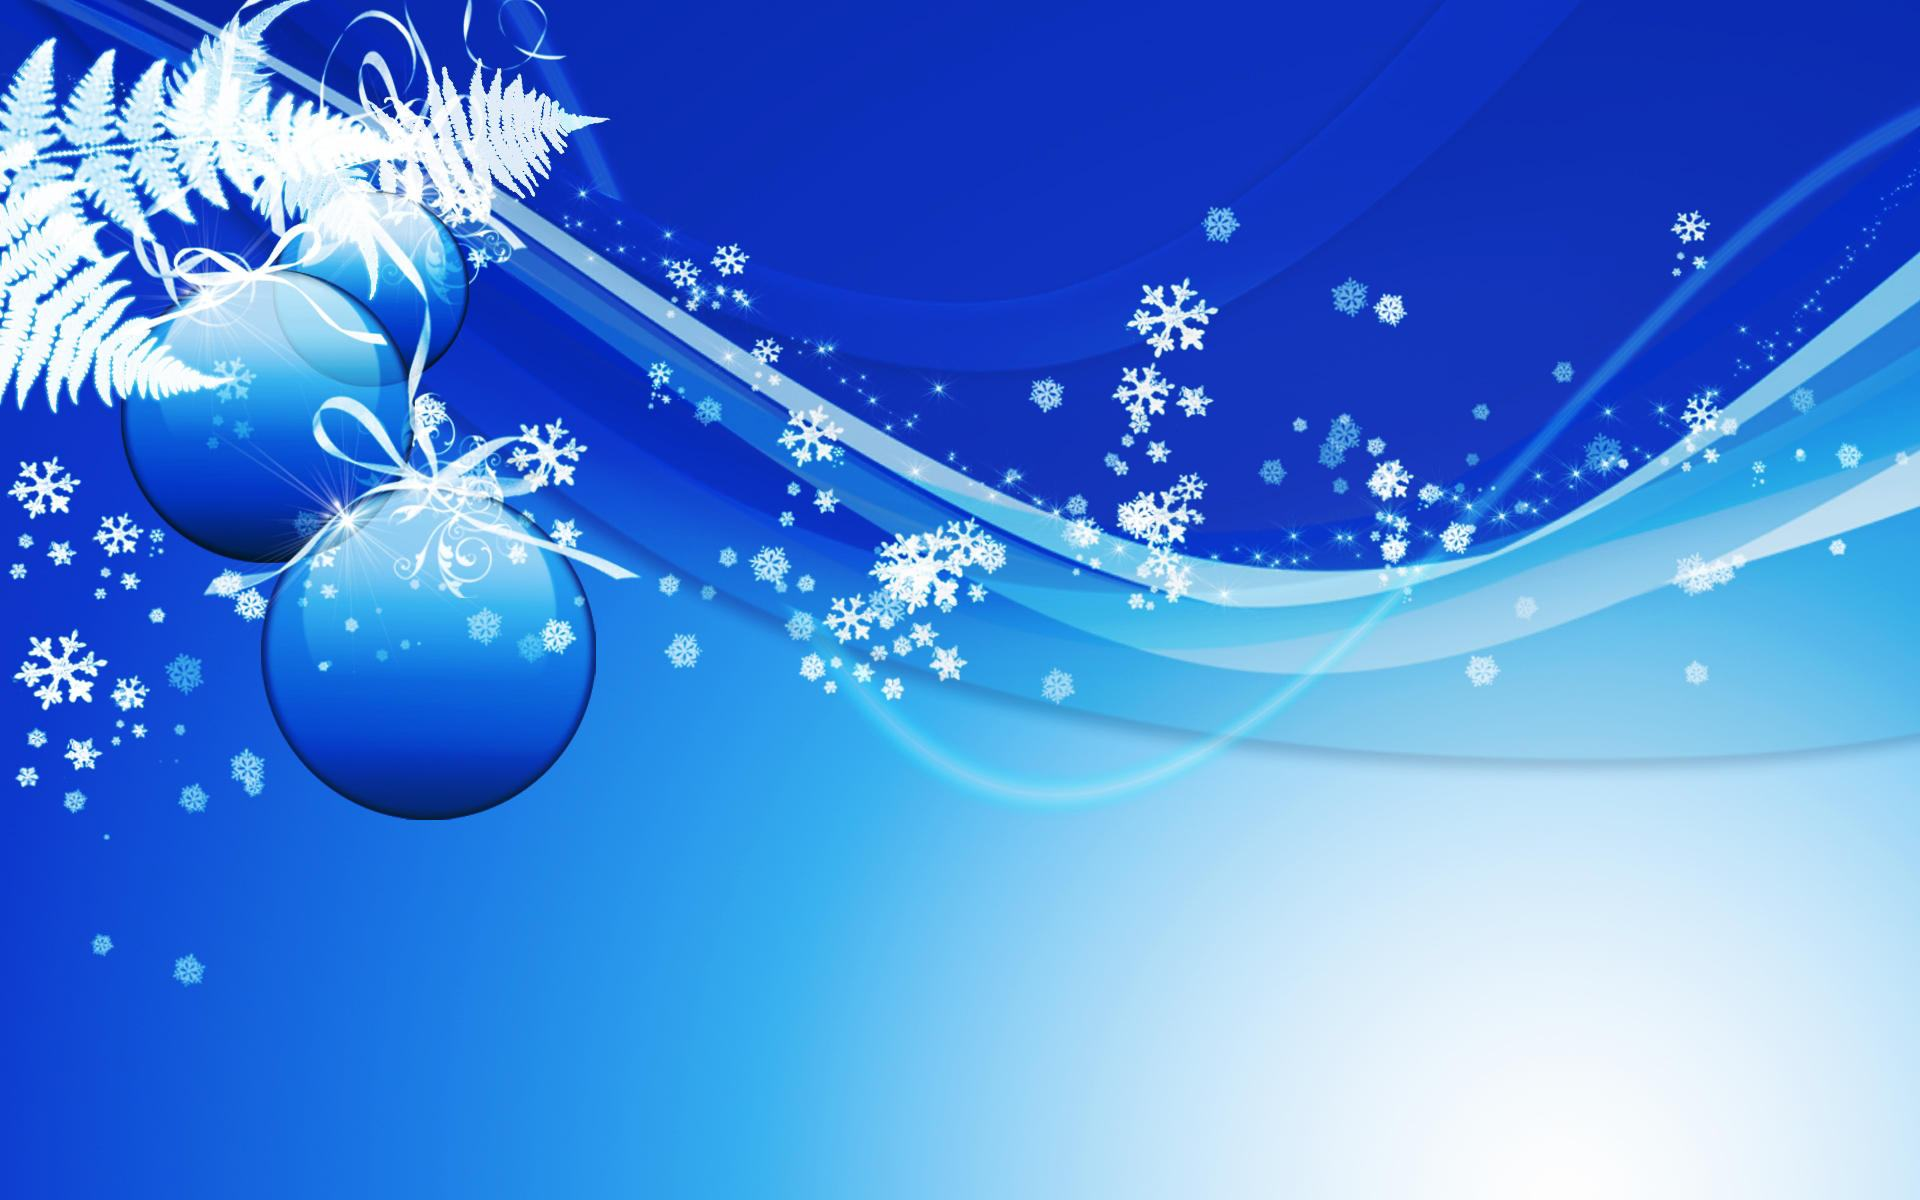 Wallpapers Backgrounds - christmas backgrounds beautiful holiday